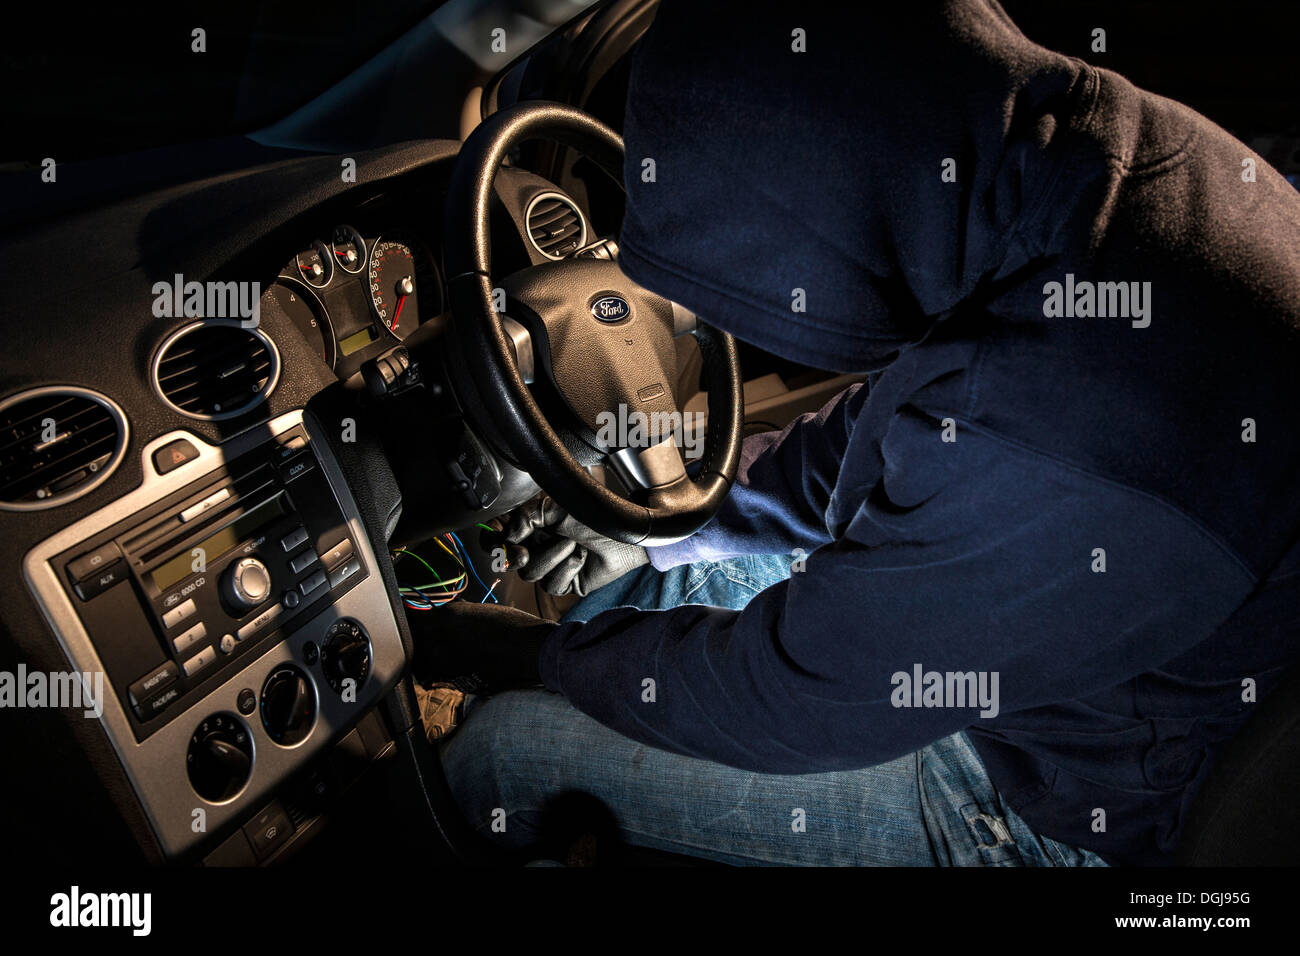 A man ing a hoody hot wiring a car Stock Photo: 61867948 ... Hot Wiring on